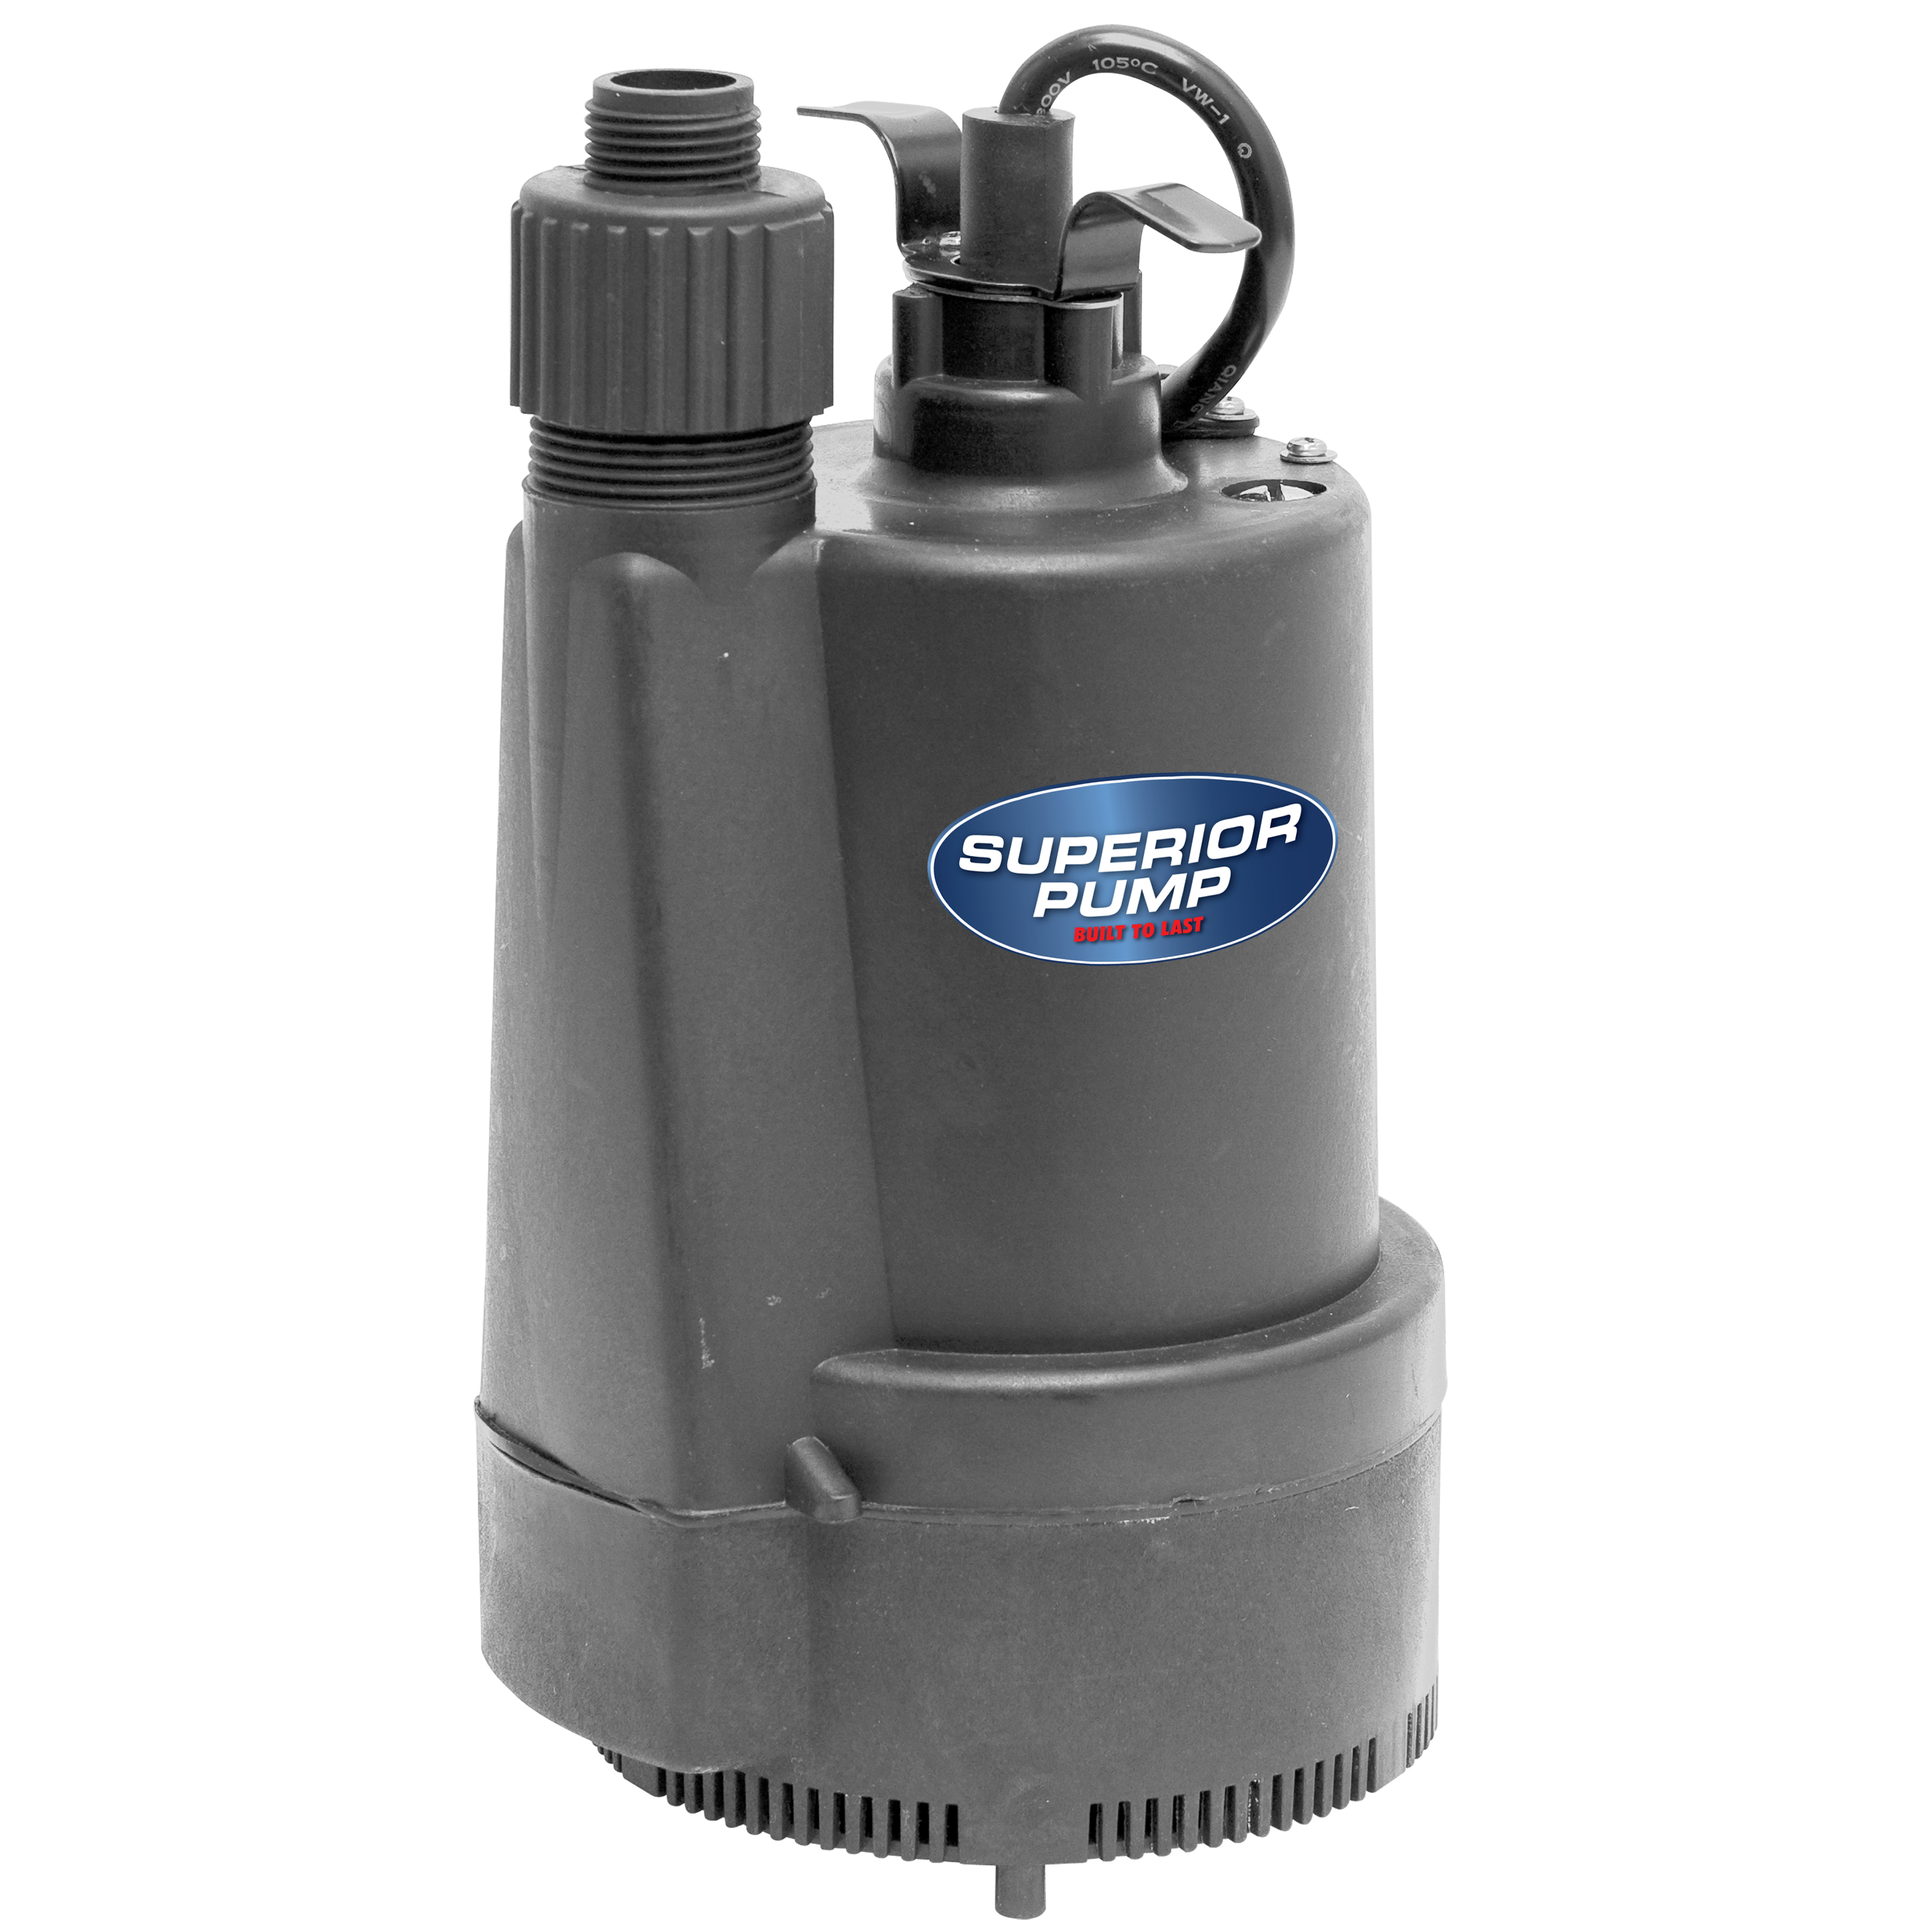 Superior Pump 1/3 HP Utility Pump